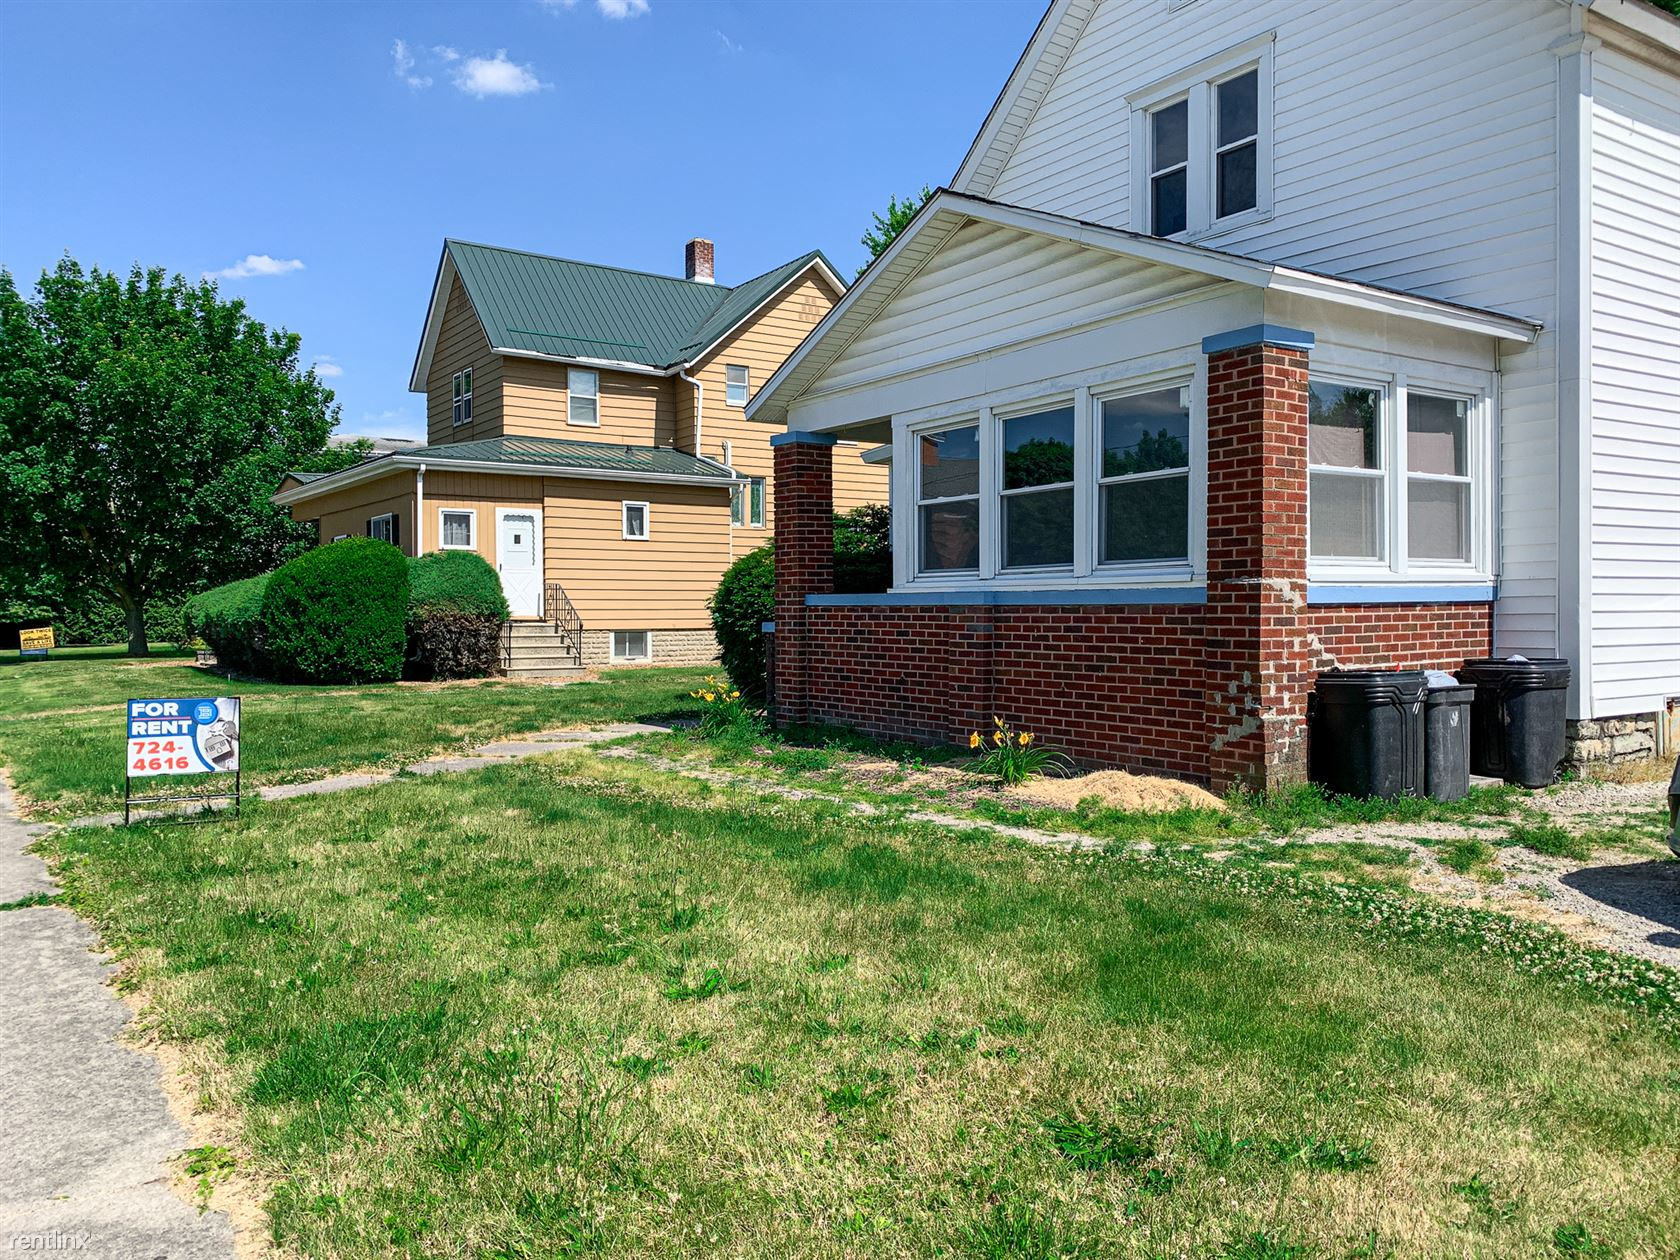 607 W Monroe St, Decatur, IN - $569